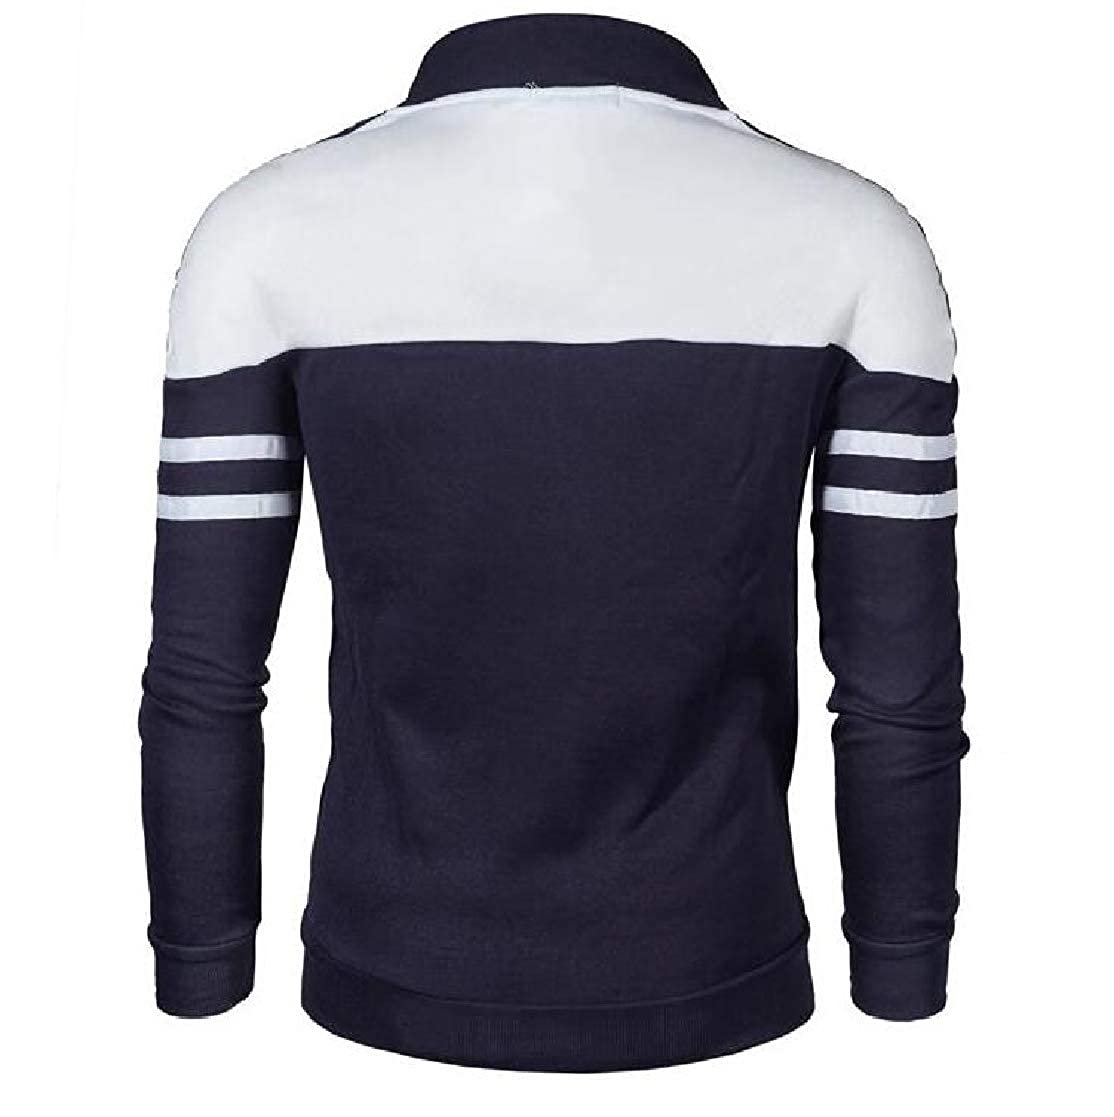 YUNY Mens Juniors Plus Size Stand Collar Zip-up Outwear Sweatshirt Navy Blue 3XL